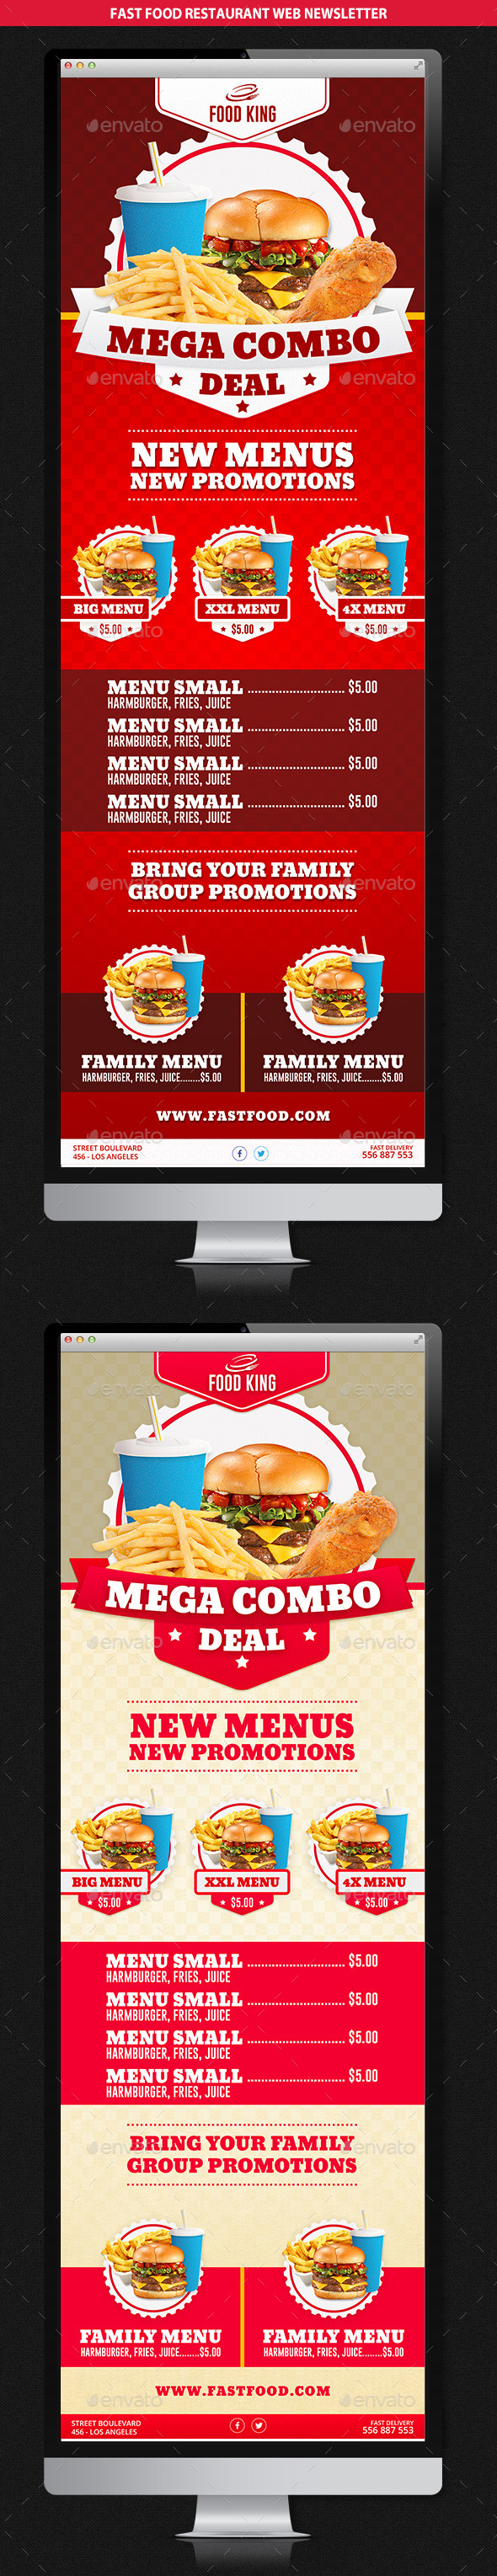 Restaurant Fast Food Web Newsletter - E-newsletters Web Elements